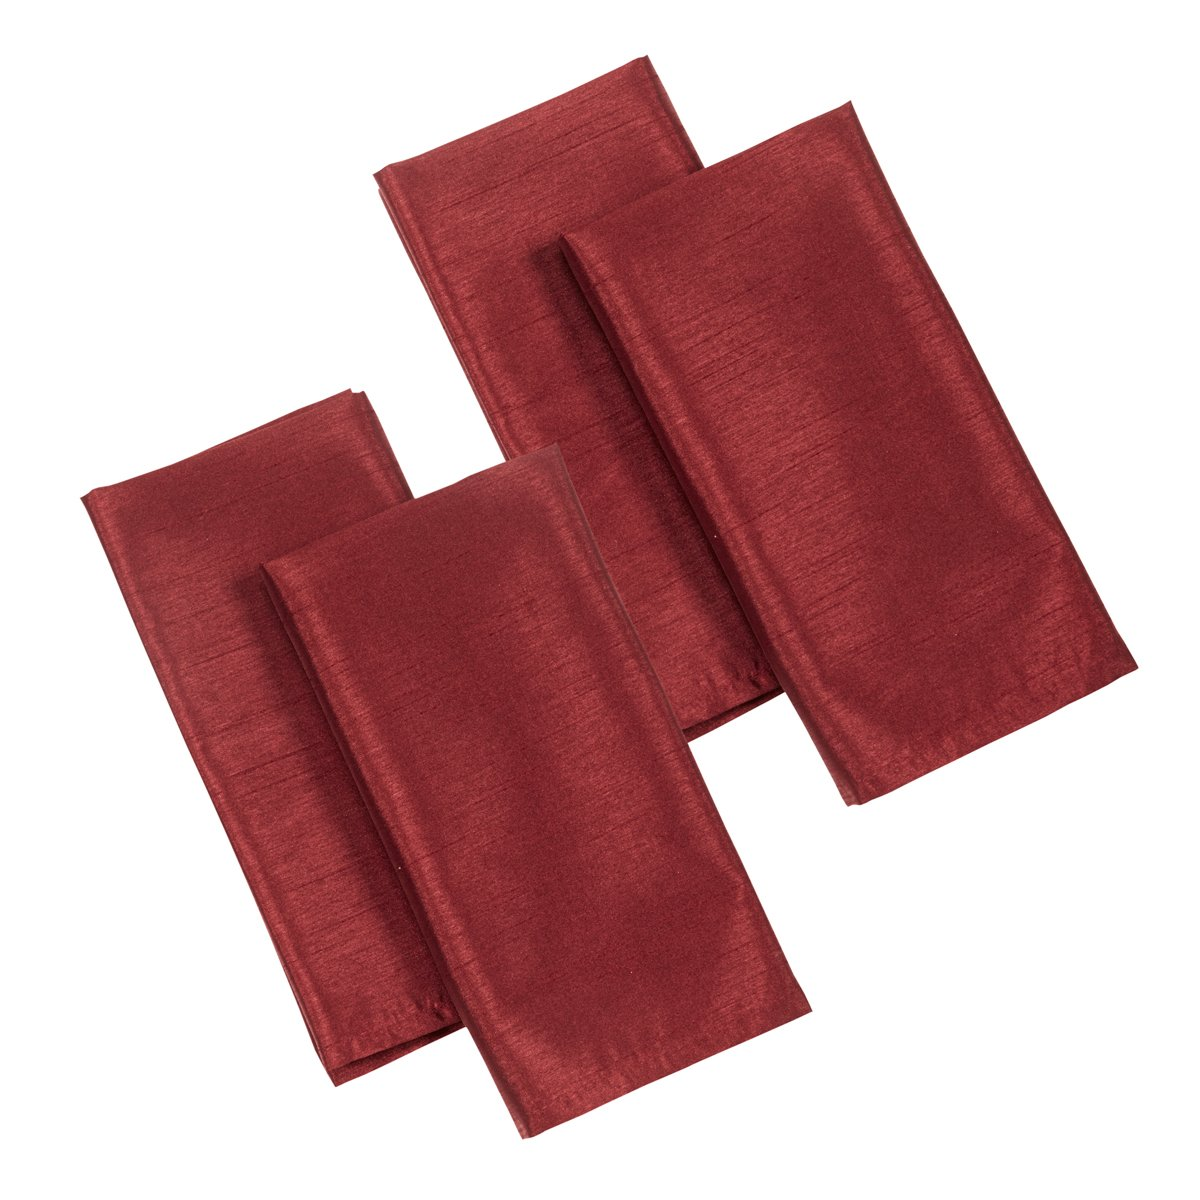 Casual Dining 17 x 17-inch Faux Silk Napkins, Pack of 4, Burgundy Home Creations 87606